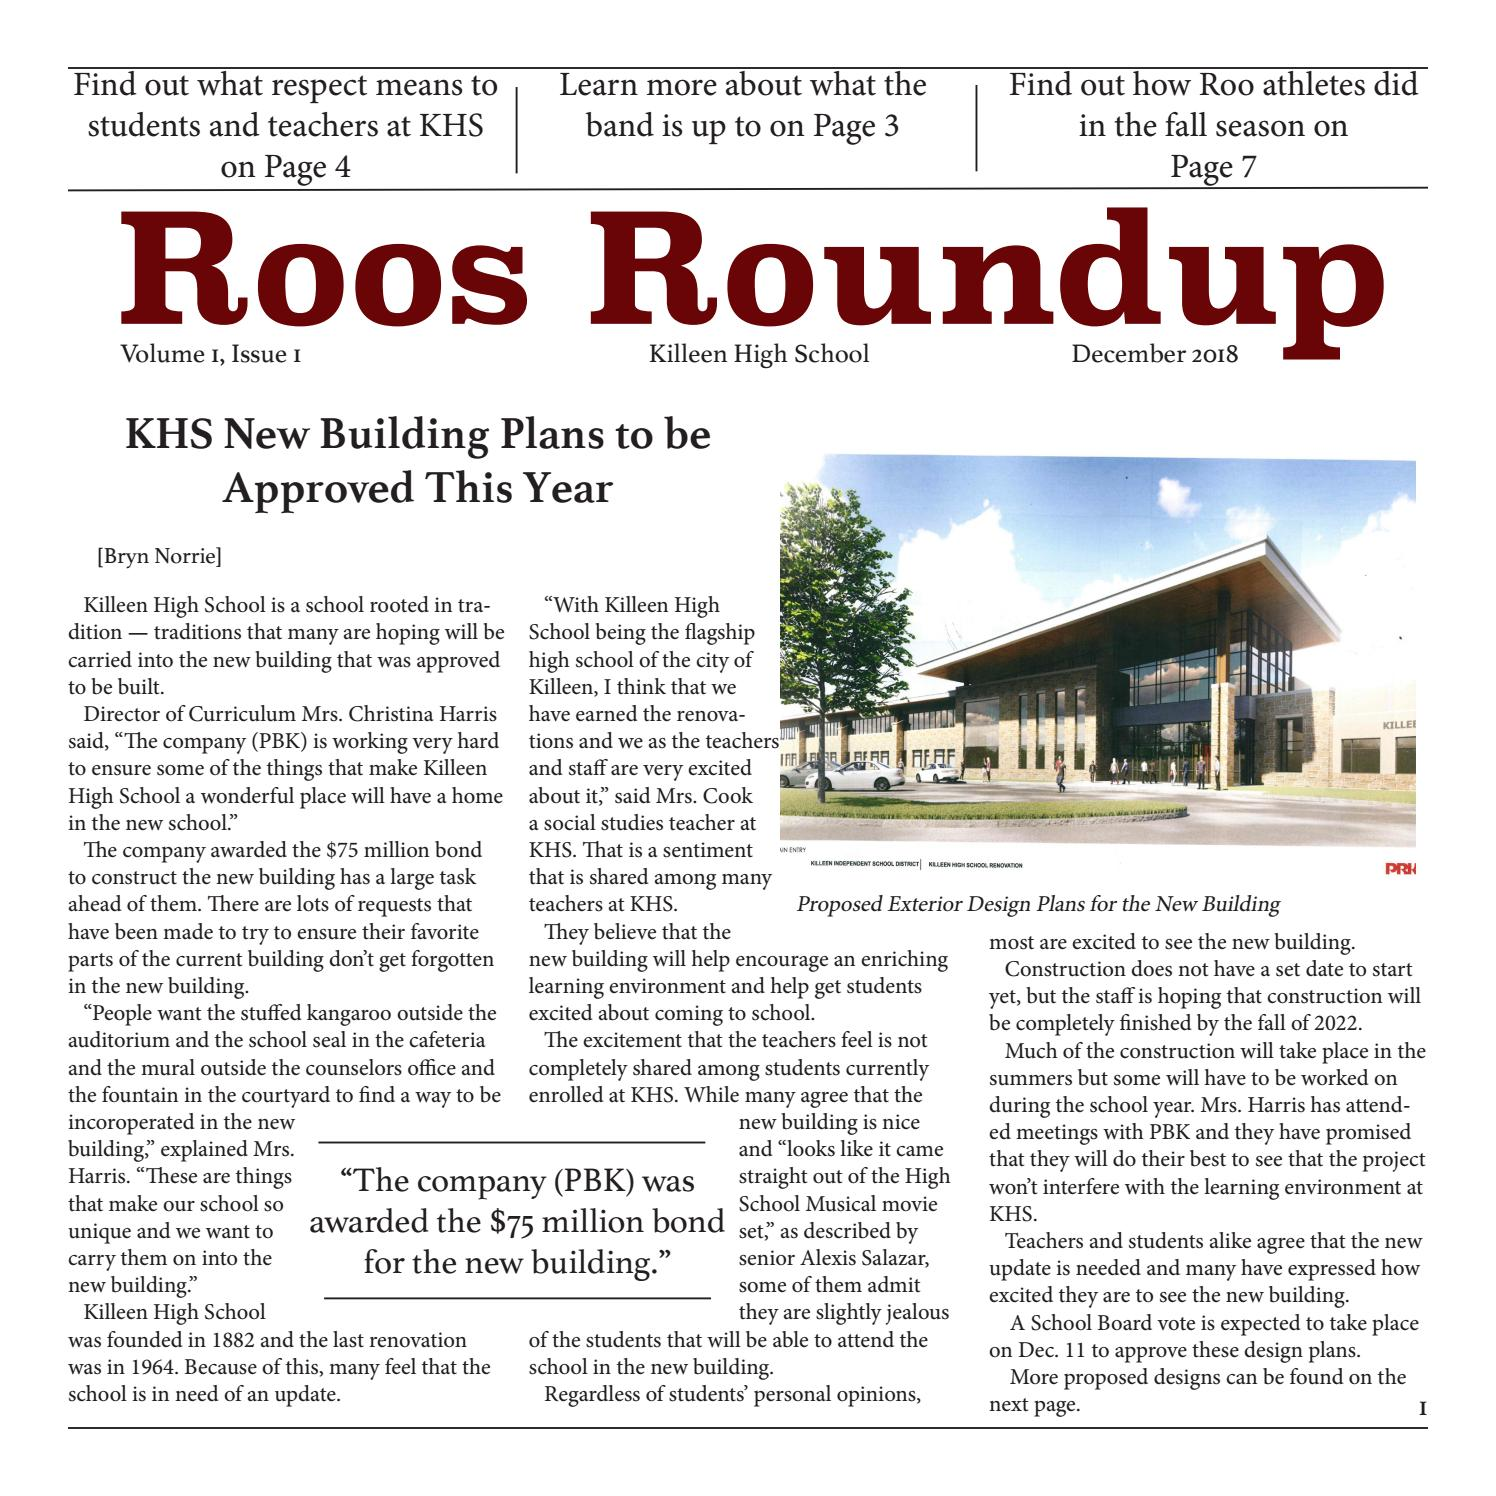 Roos Roundup December Edition by bryn norrie - issuu